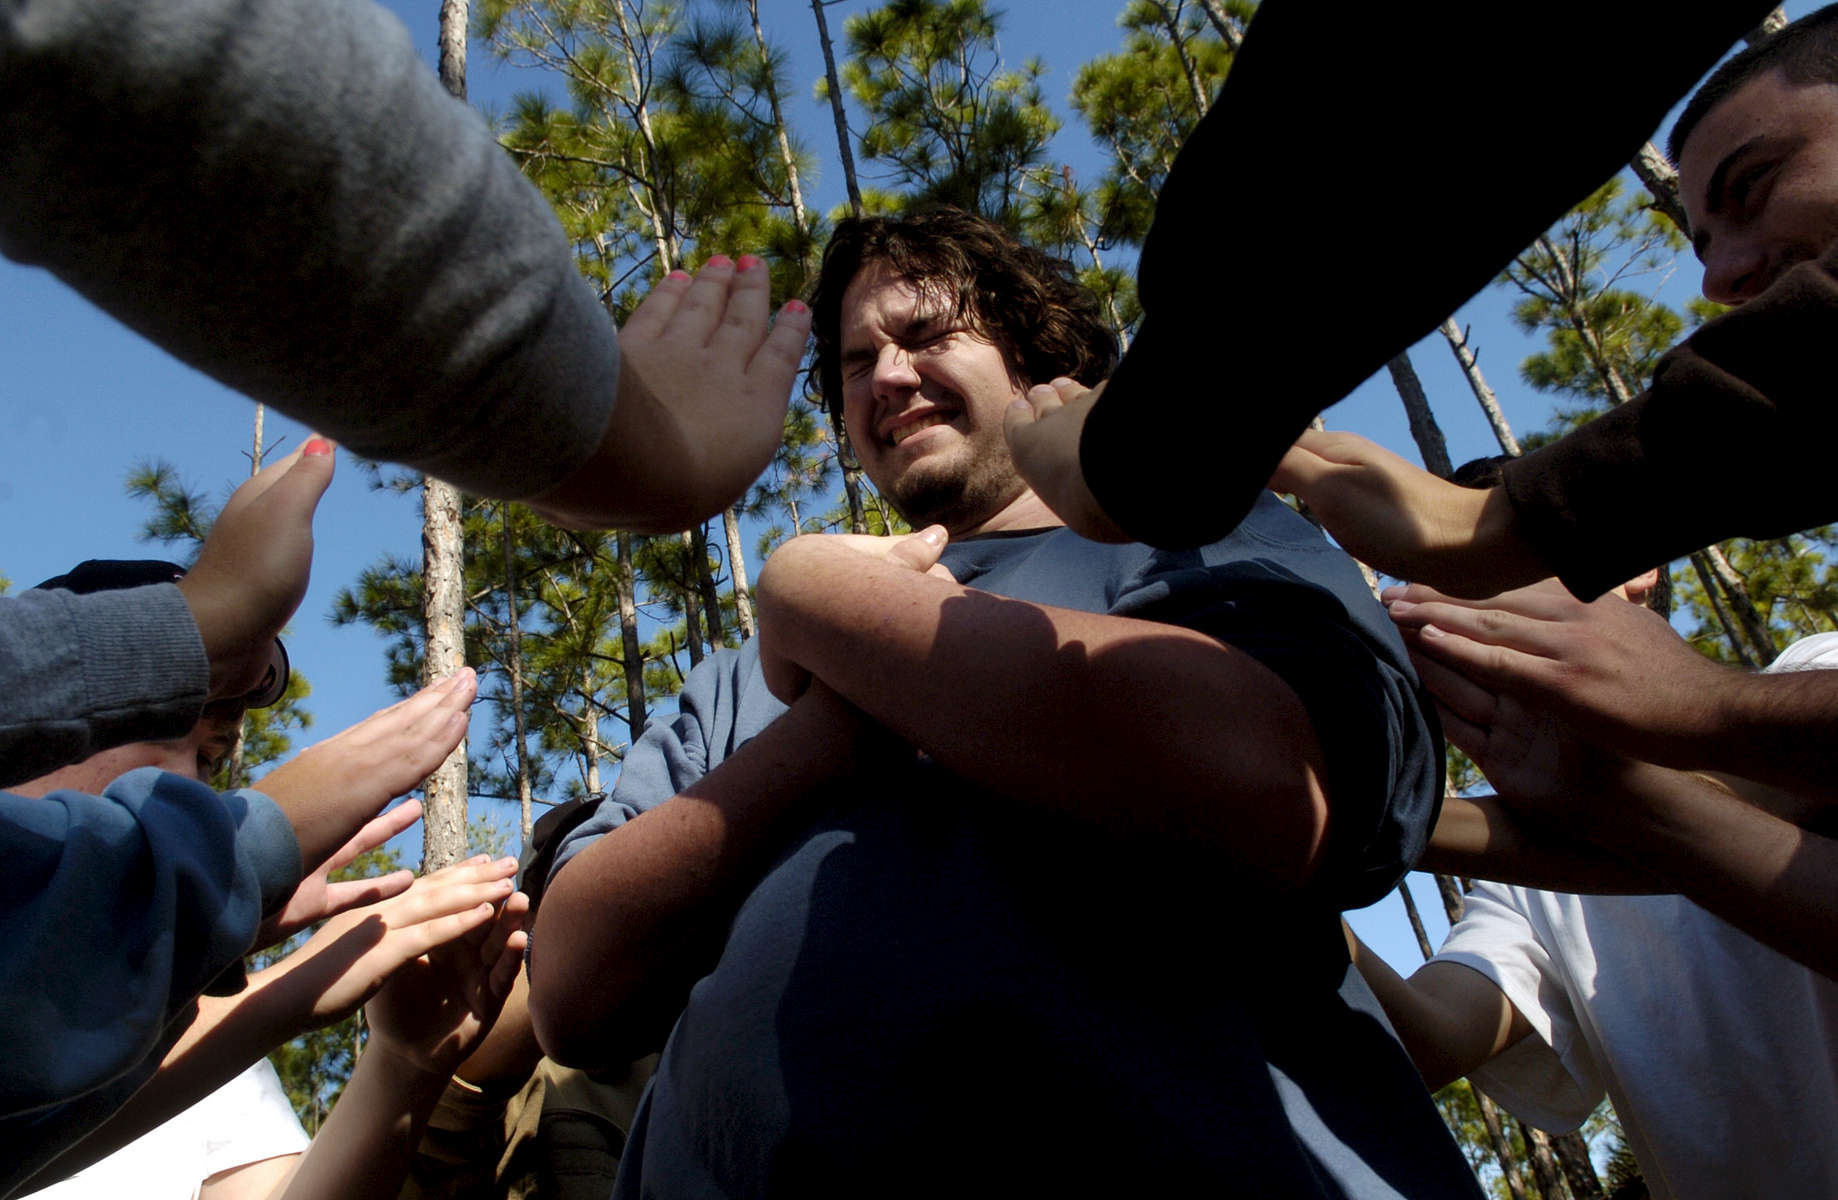 Joel Sherrer, 17, of Venture Crew 39 in Arcadia, Florida, apprehensively falls backwards into the hands of other scouts during a Challenging Outdoor Personal Experience (C.O.P.E.) course. About 30 teen scouts took part in the team and trust building course.